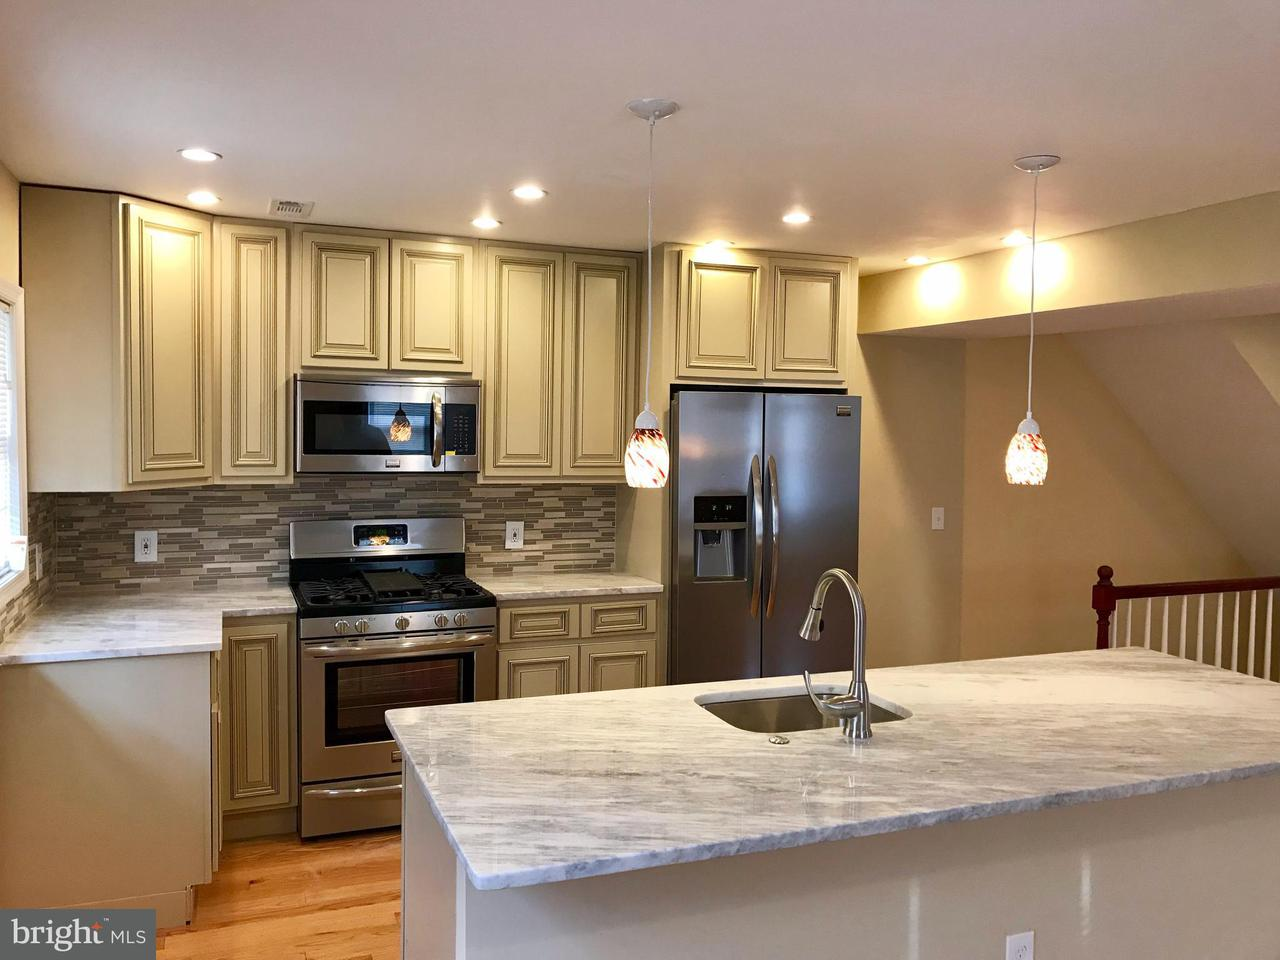 Single Family for Sale at 4708 Loch Raven Blvd Baltimore, Maryland 21239 United States